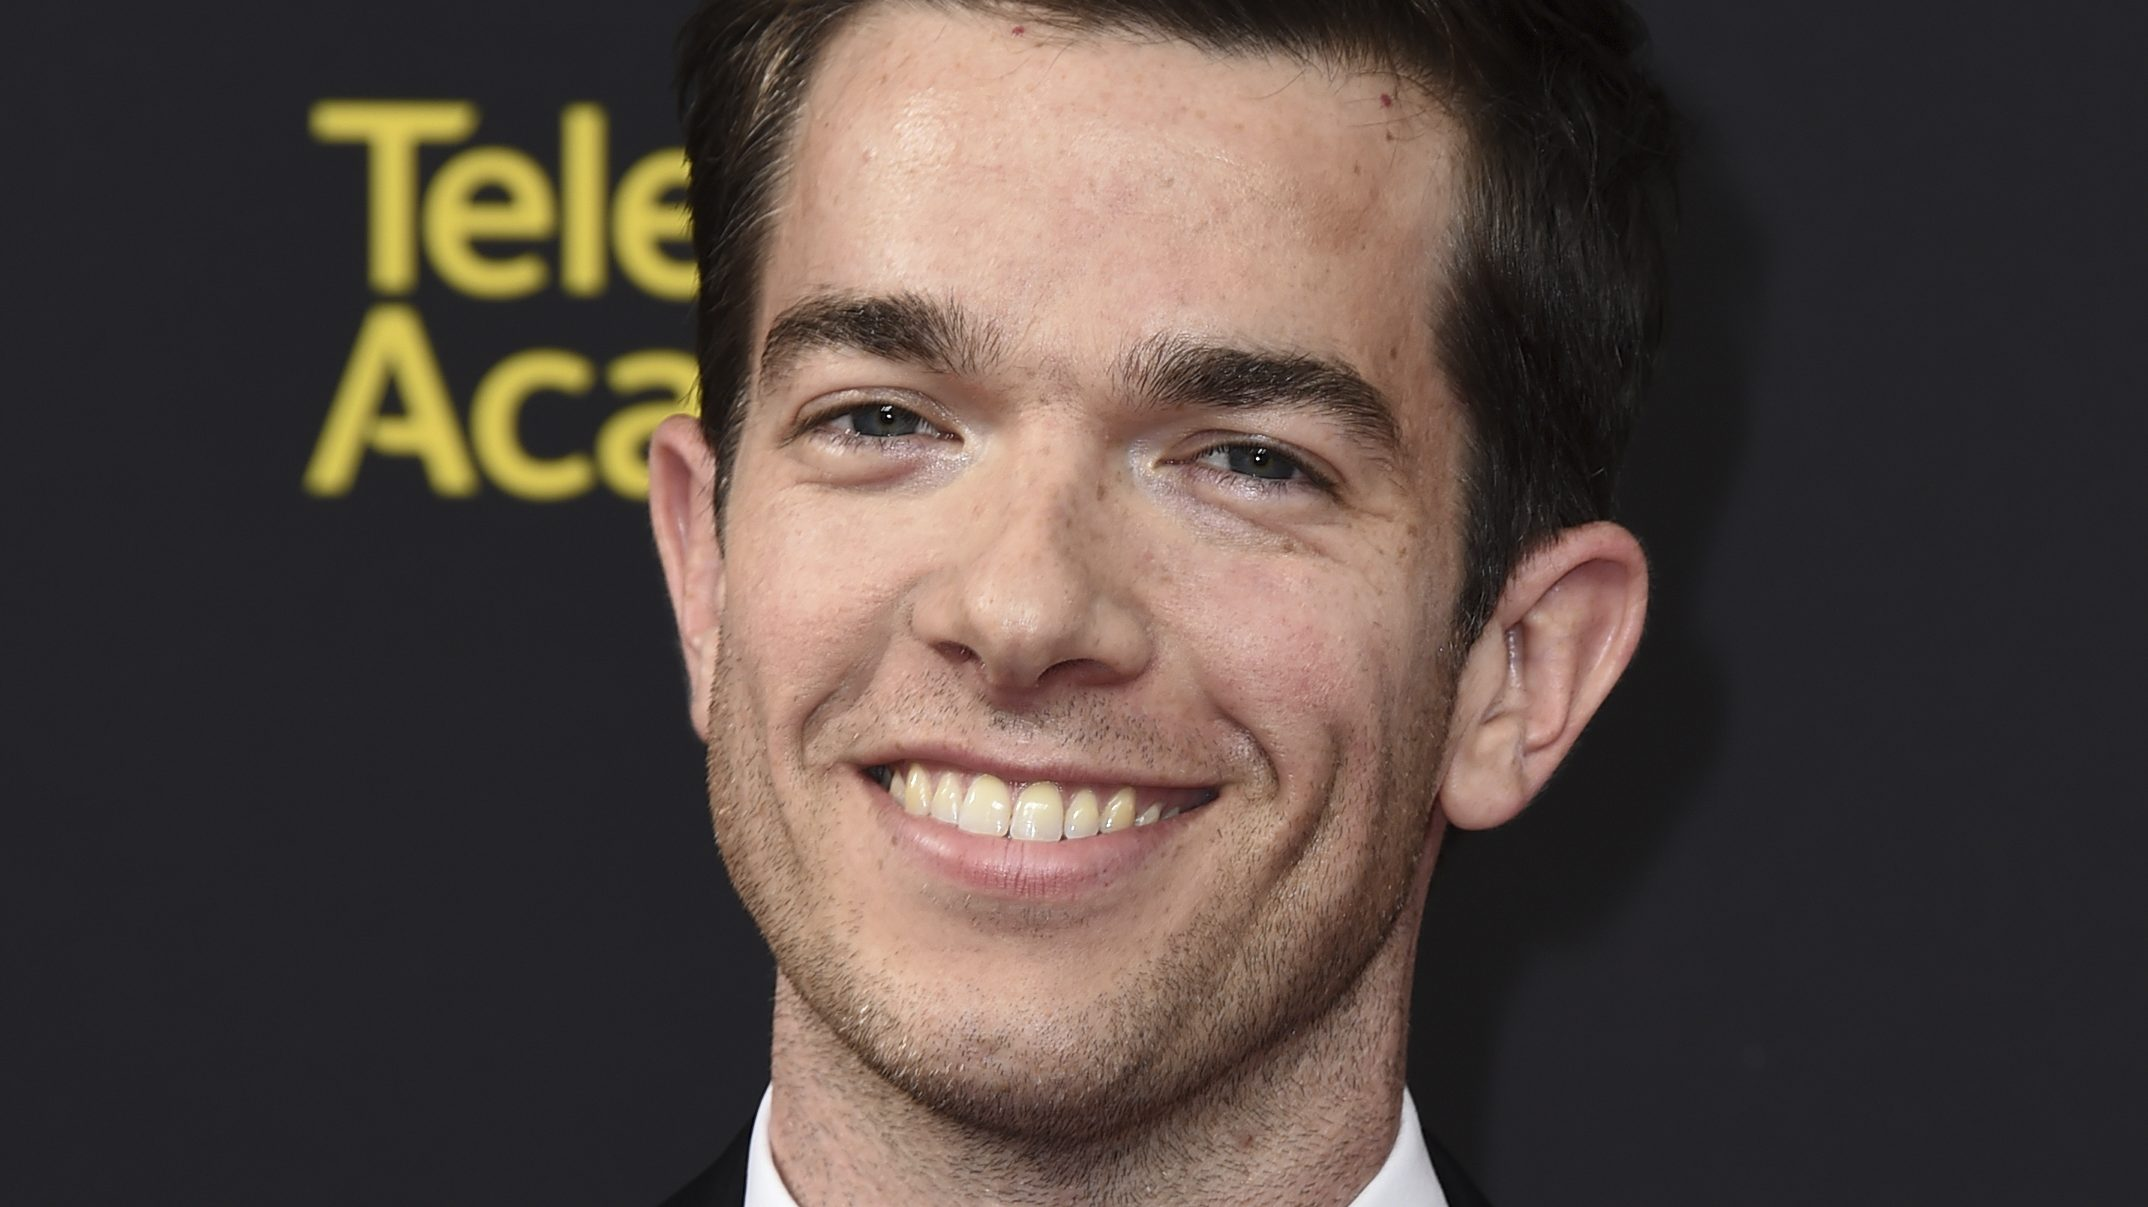 John Mulaney Set To Host 'SNL' Next Week, With The Strokes As Musical Guest